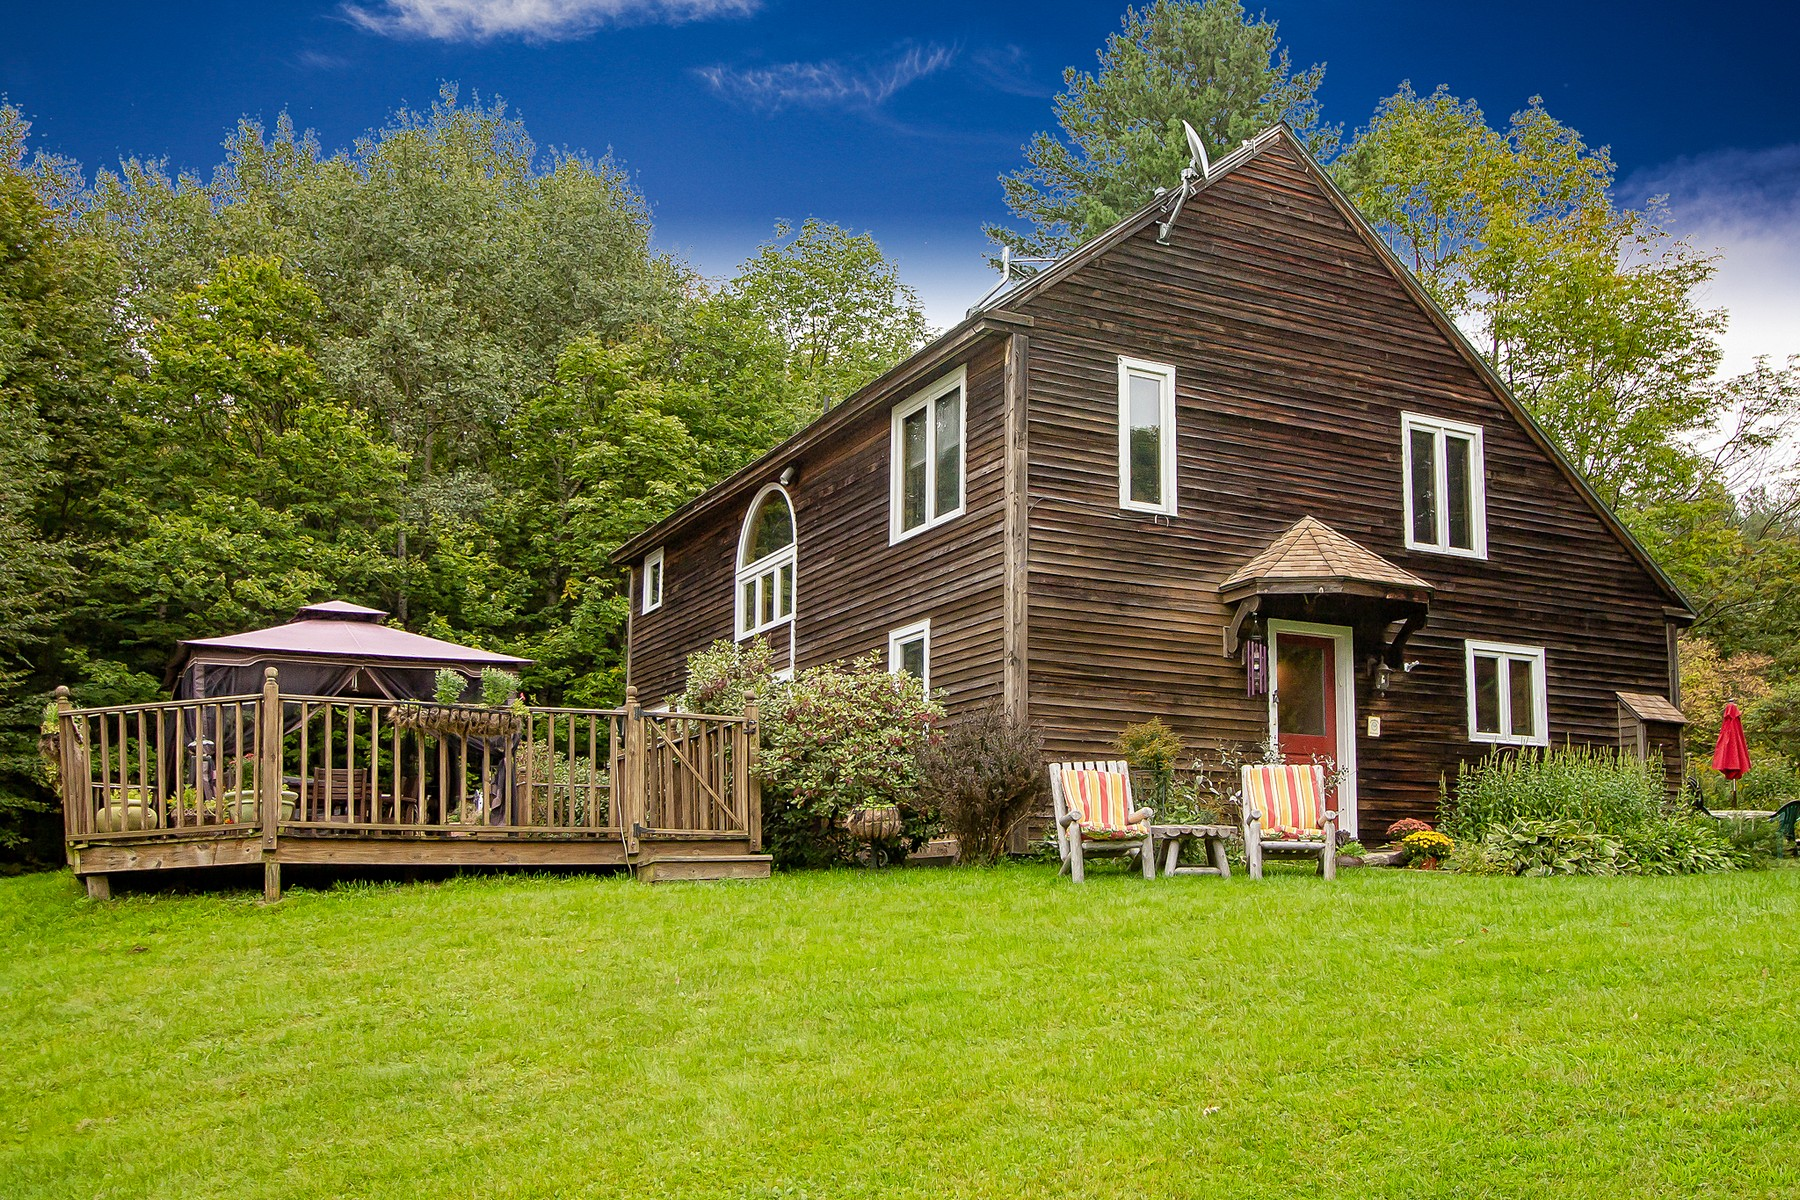 Single Family Homes for Sale at Post and Beam with Mountain View 146 Minor Rd Wilmington, Vermont 05363 United States